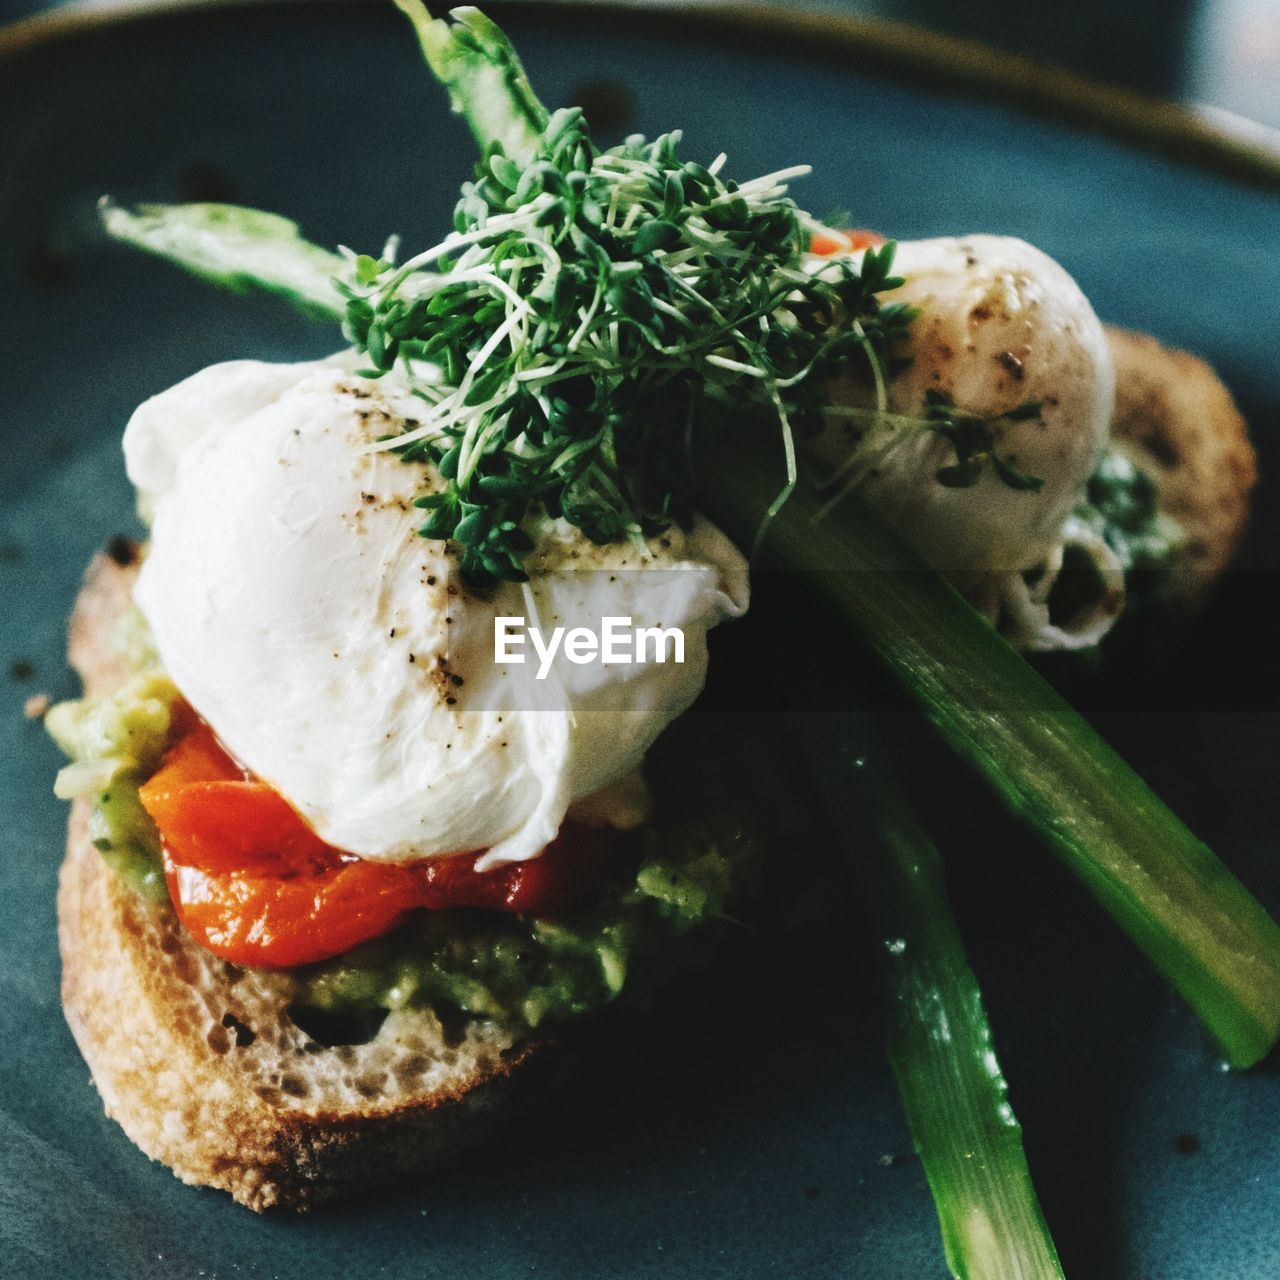 food and drink, food, freshness, ready-to-eat, close-up, healthy eating, indoors, still life, no people, vegetable, plate, wellbeing, serving size, meal, indulgence, bread, focus on foreground, herb, sandwich, temptation, snack, breakfast